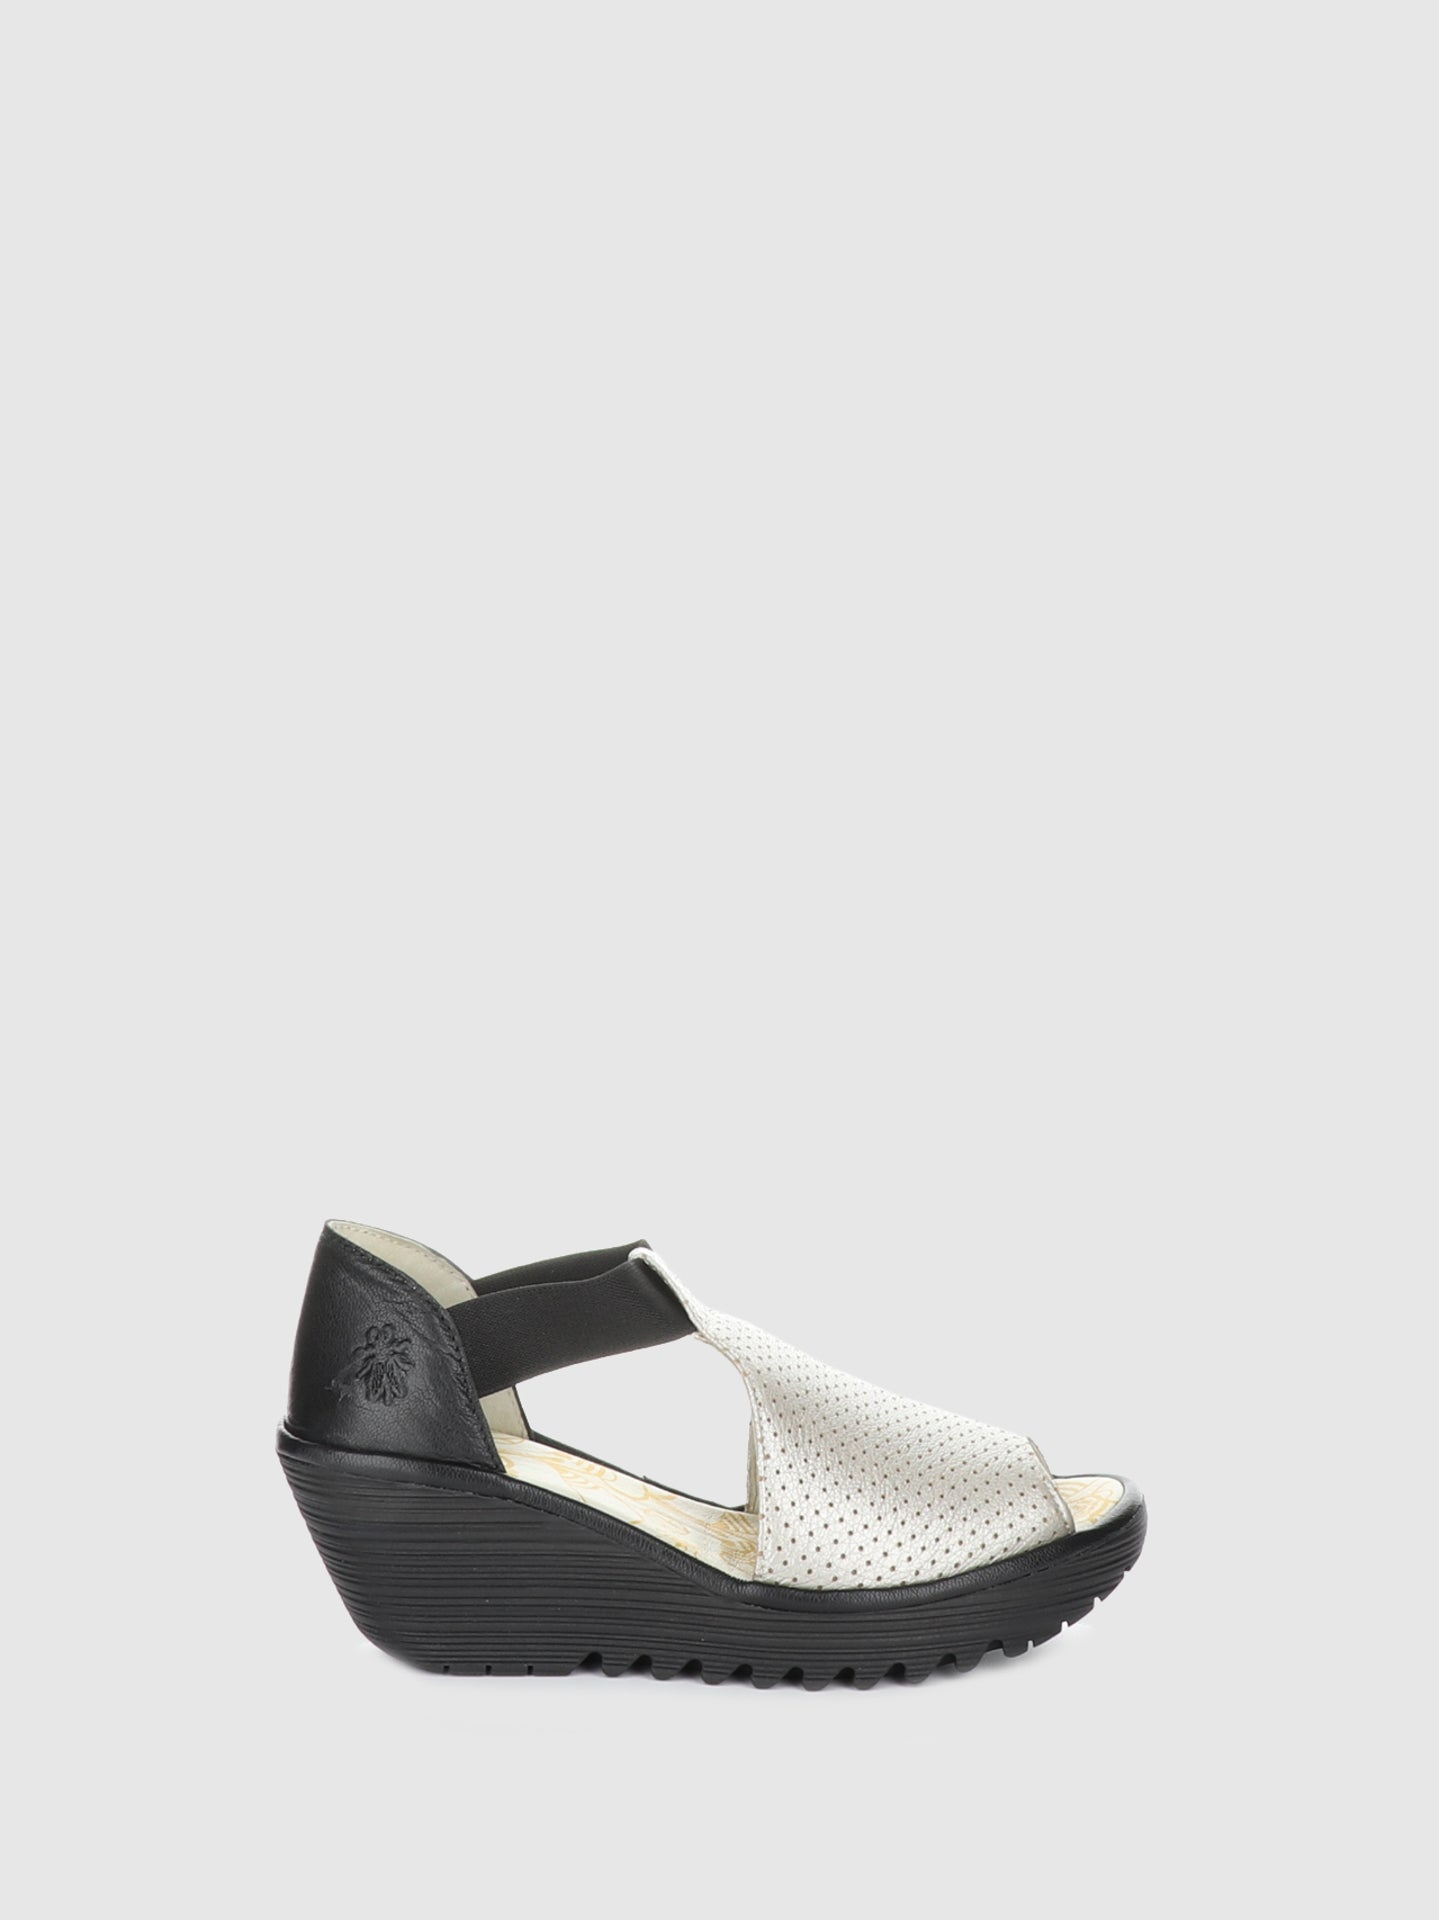 Fly London Silver Wedge Sandals